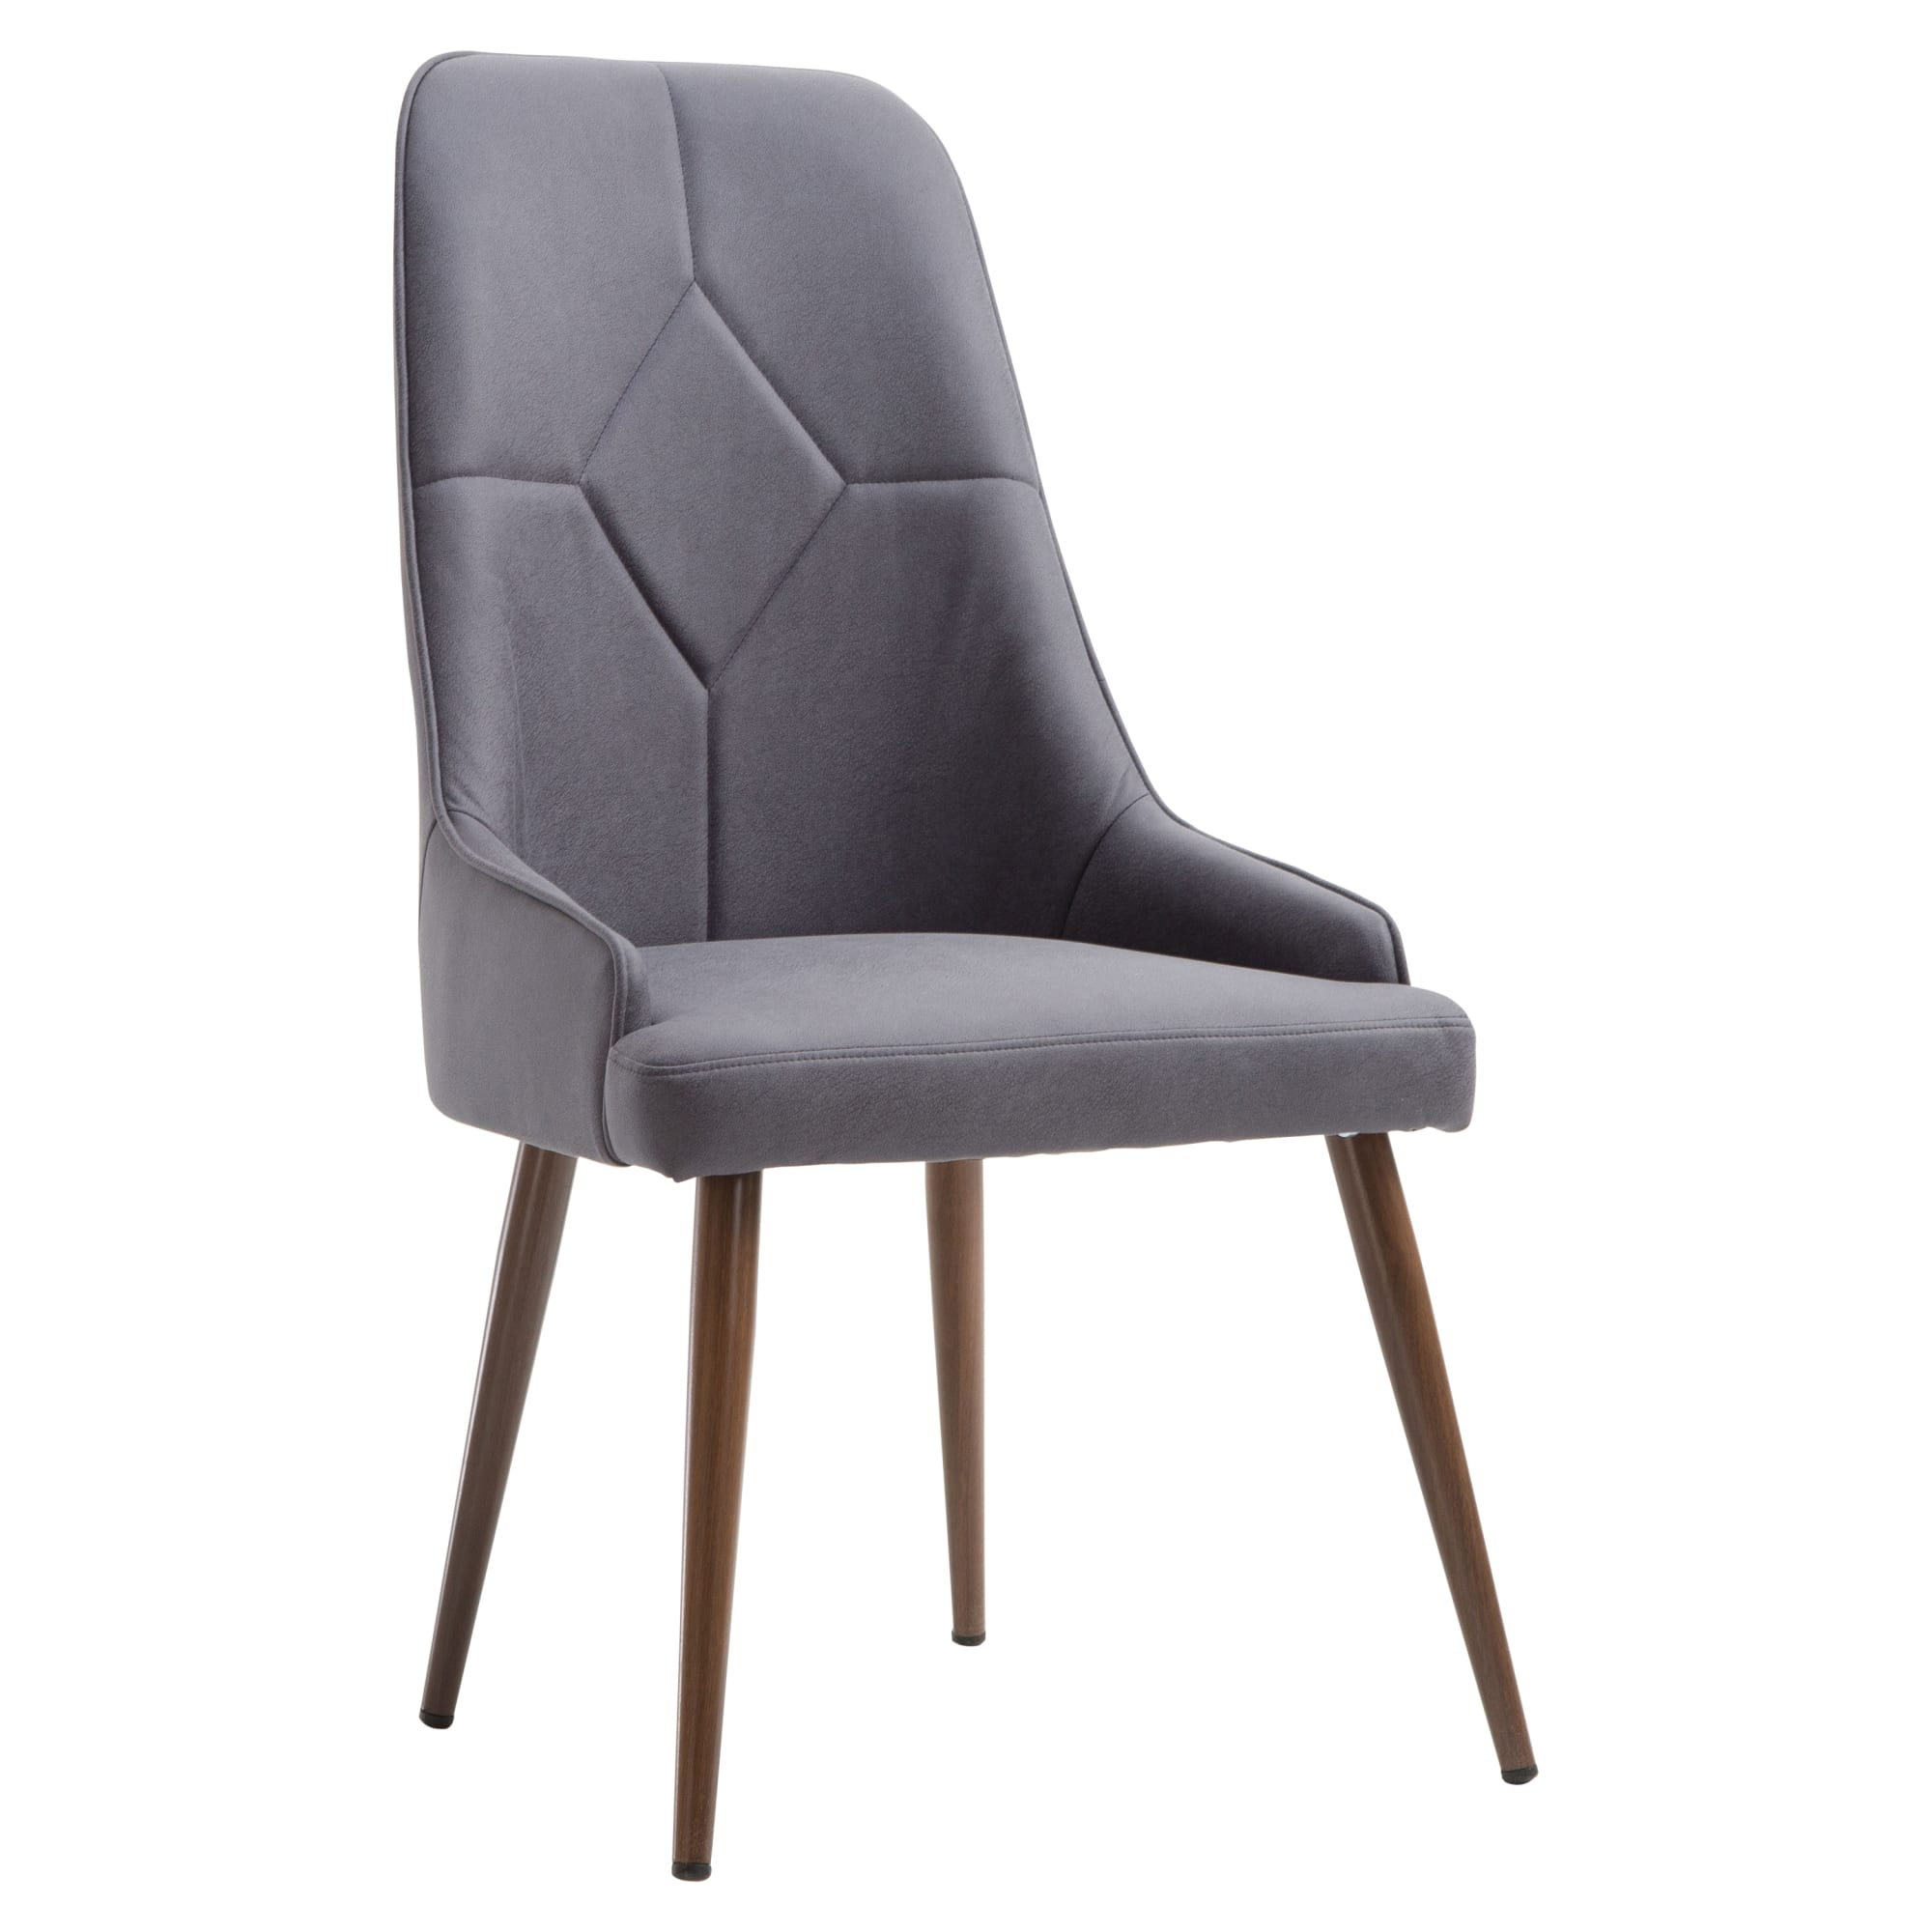 Zeta Upholstered Chair